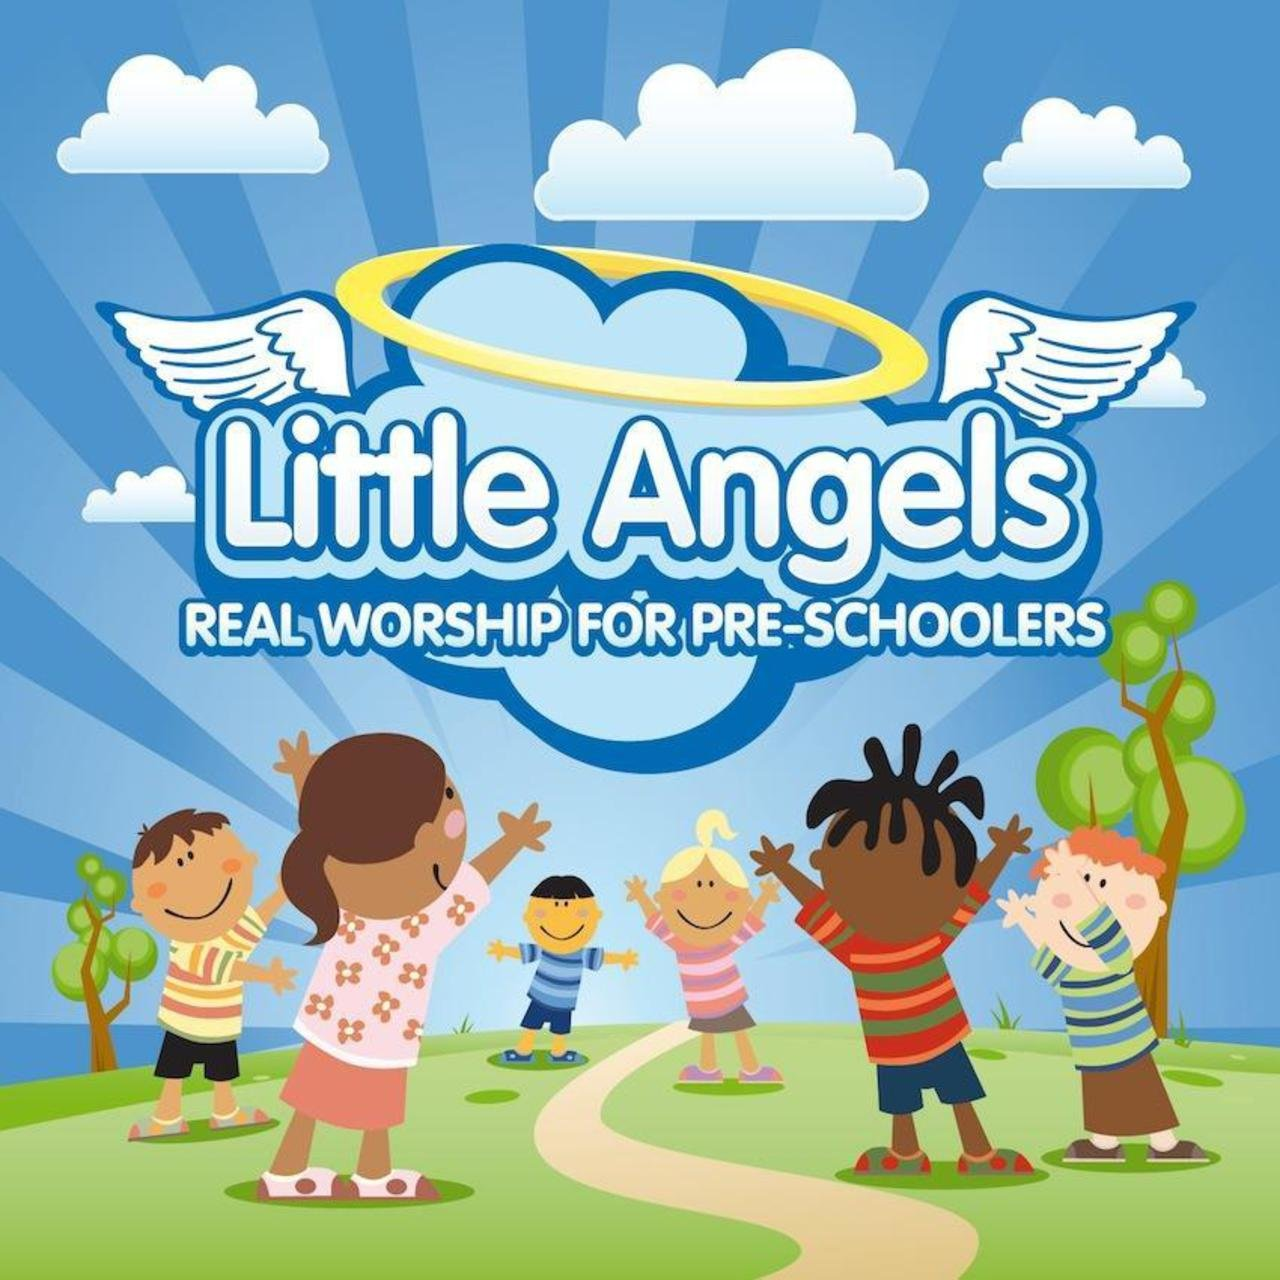 Little Angels: Real Worship for Pre-Schoolers